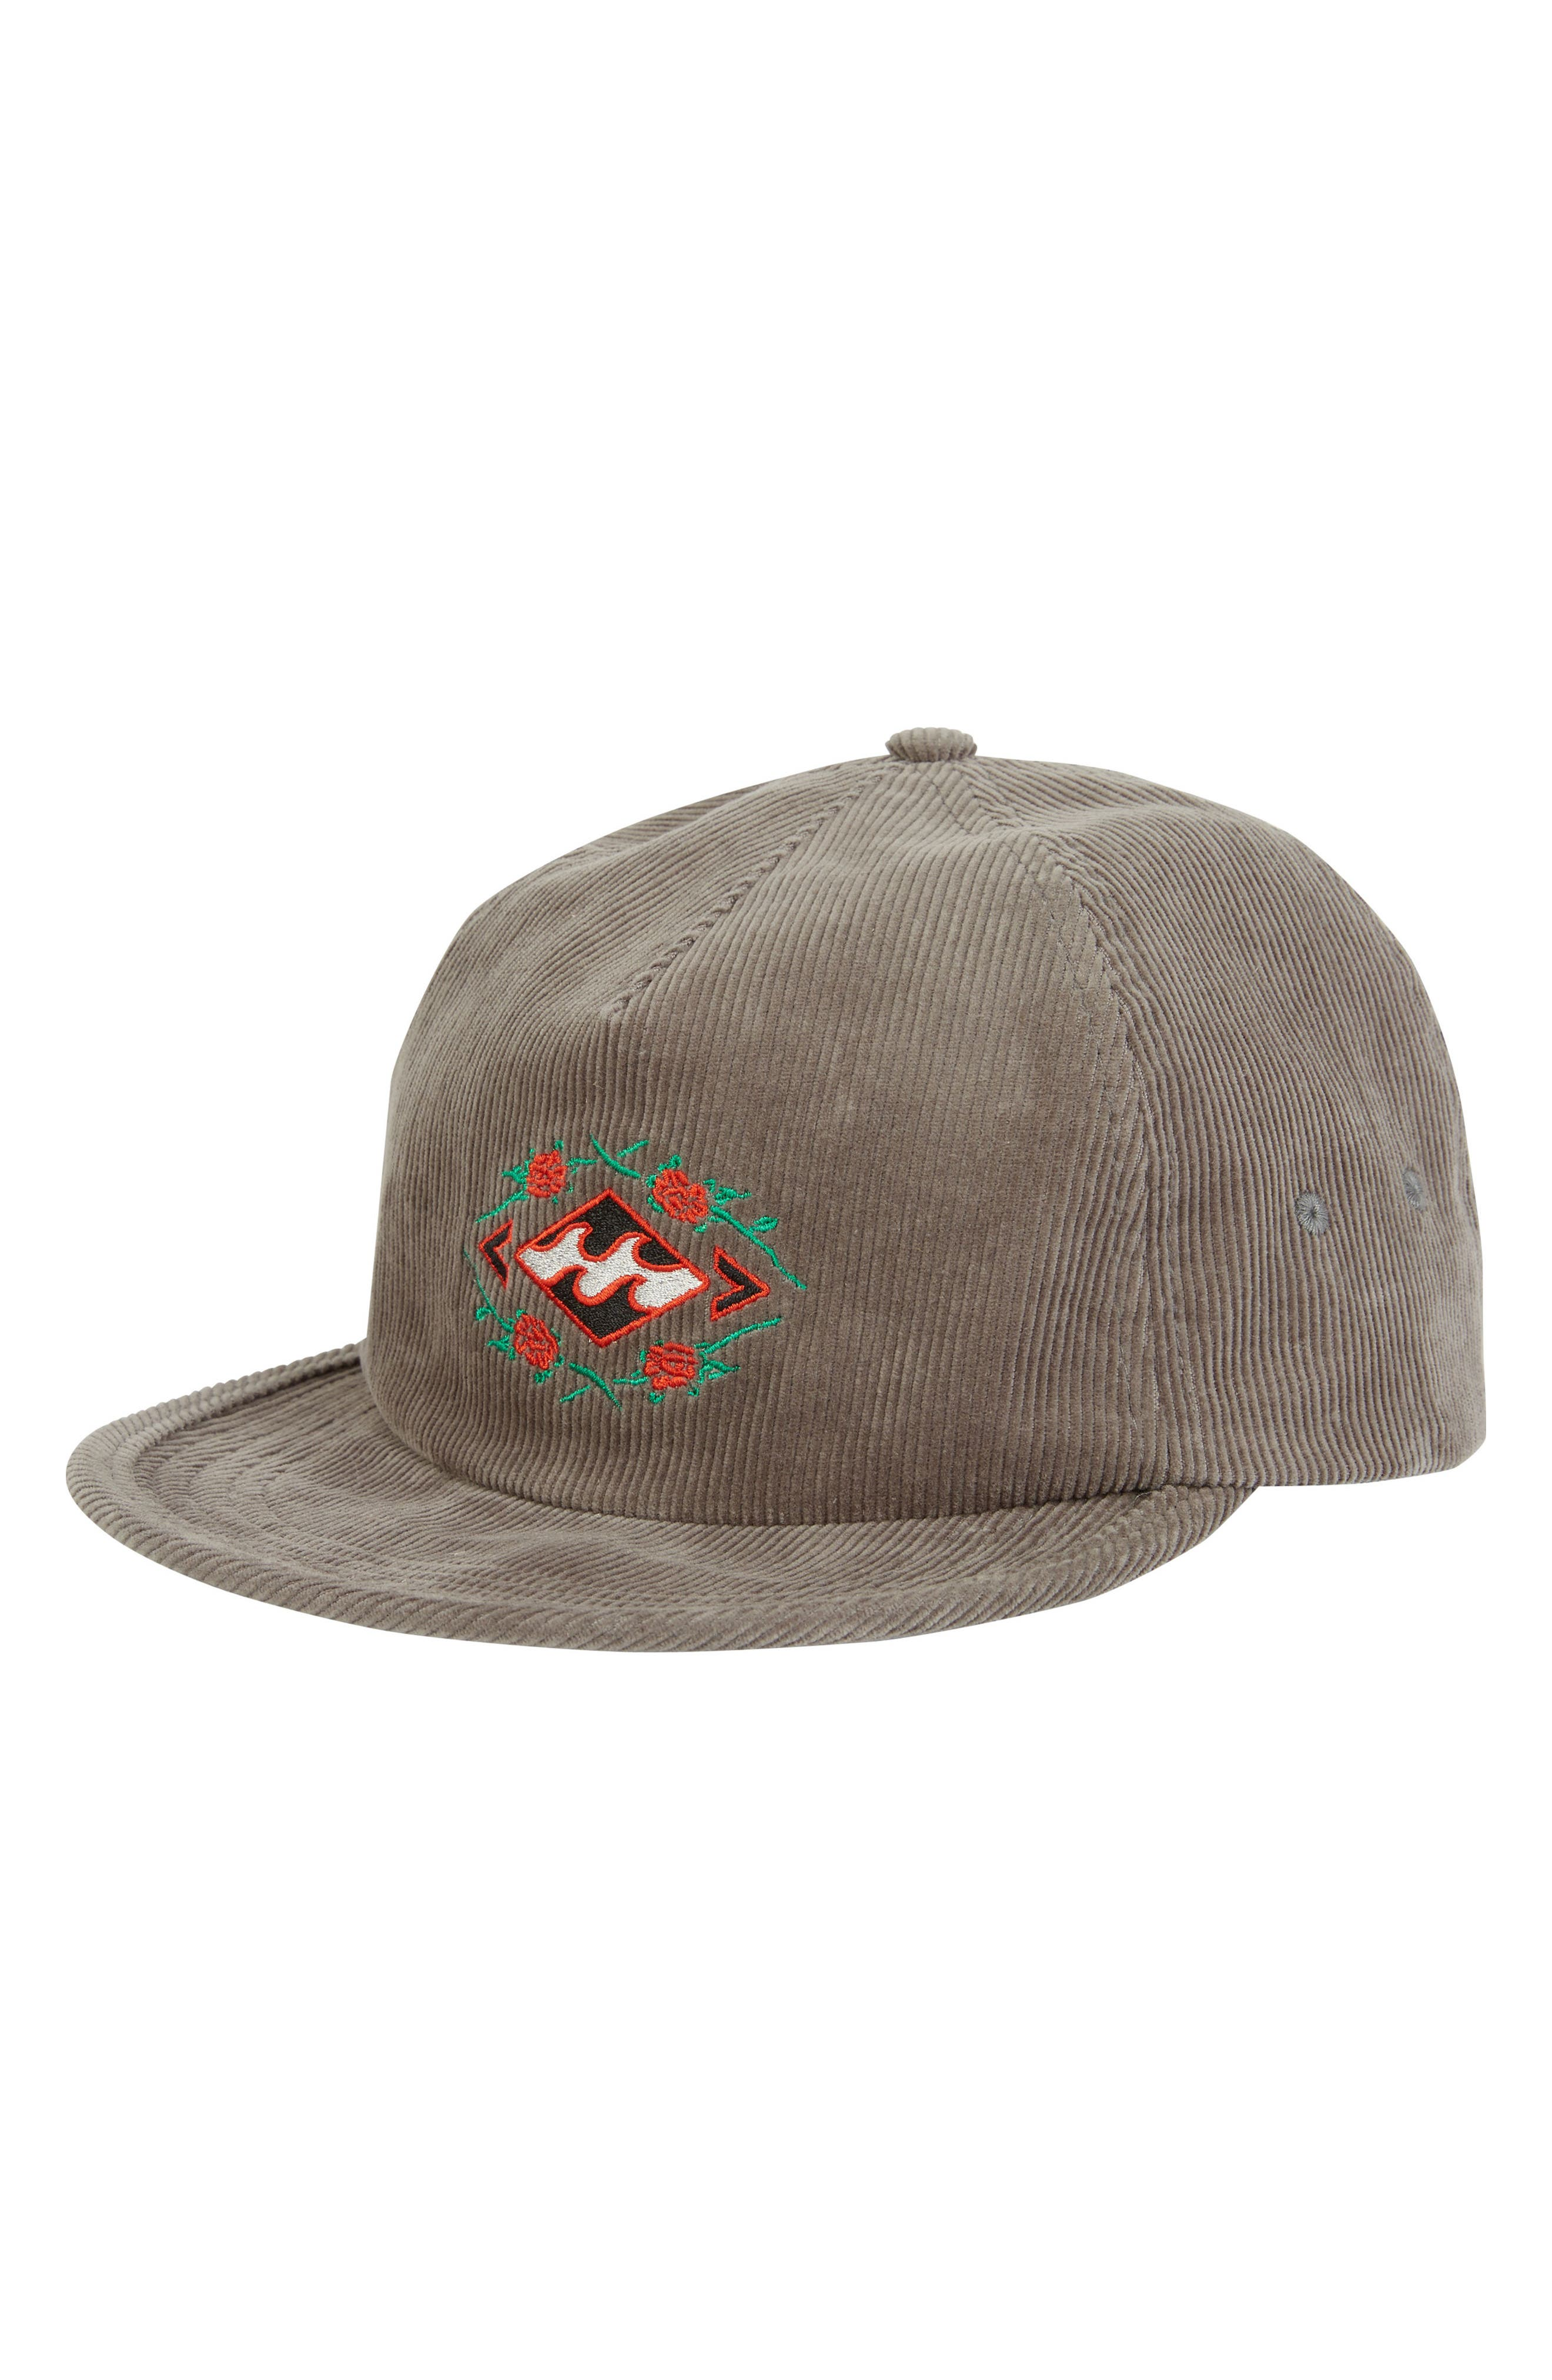 Reissue Corduroy Baseball Cap,                         Main,                         color, PEWTER